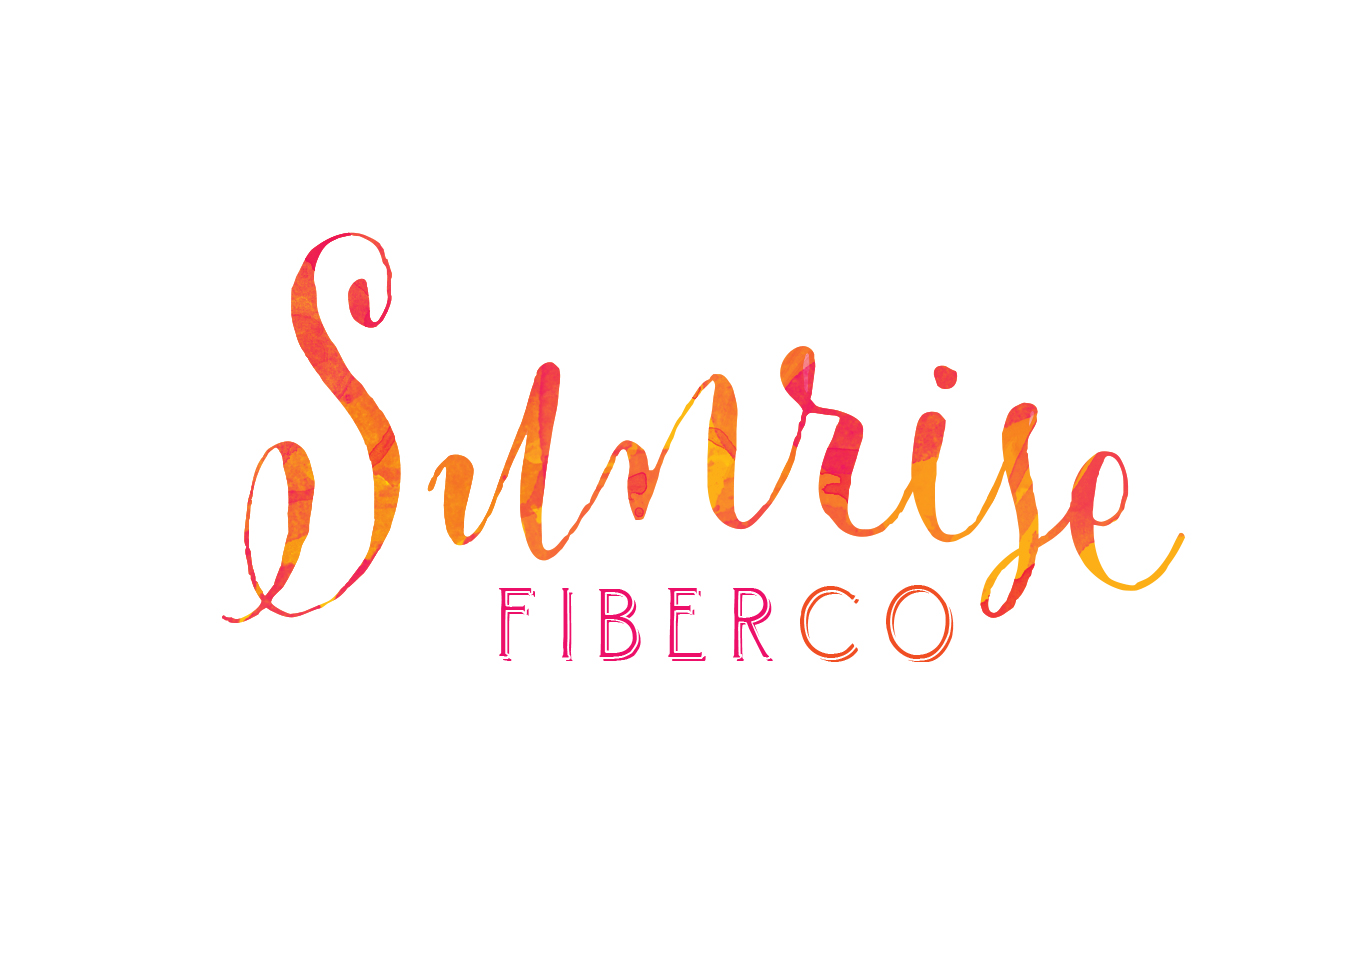 Sunrise Fiber Co.